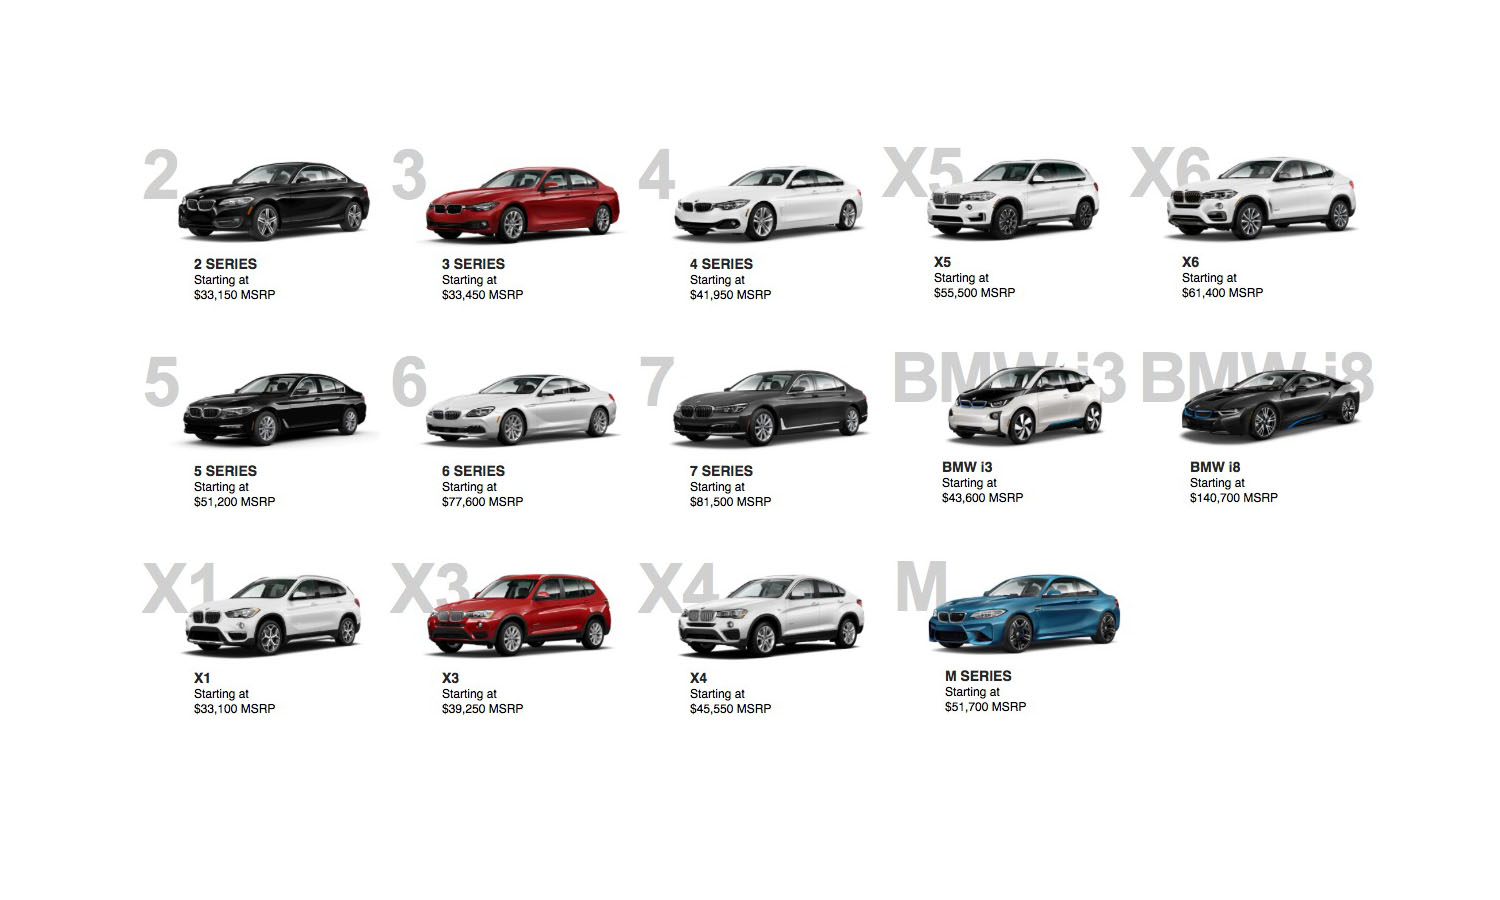 Mercedes And Bmw Admit They Have Too Many Models But The